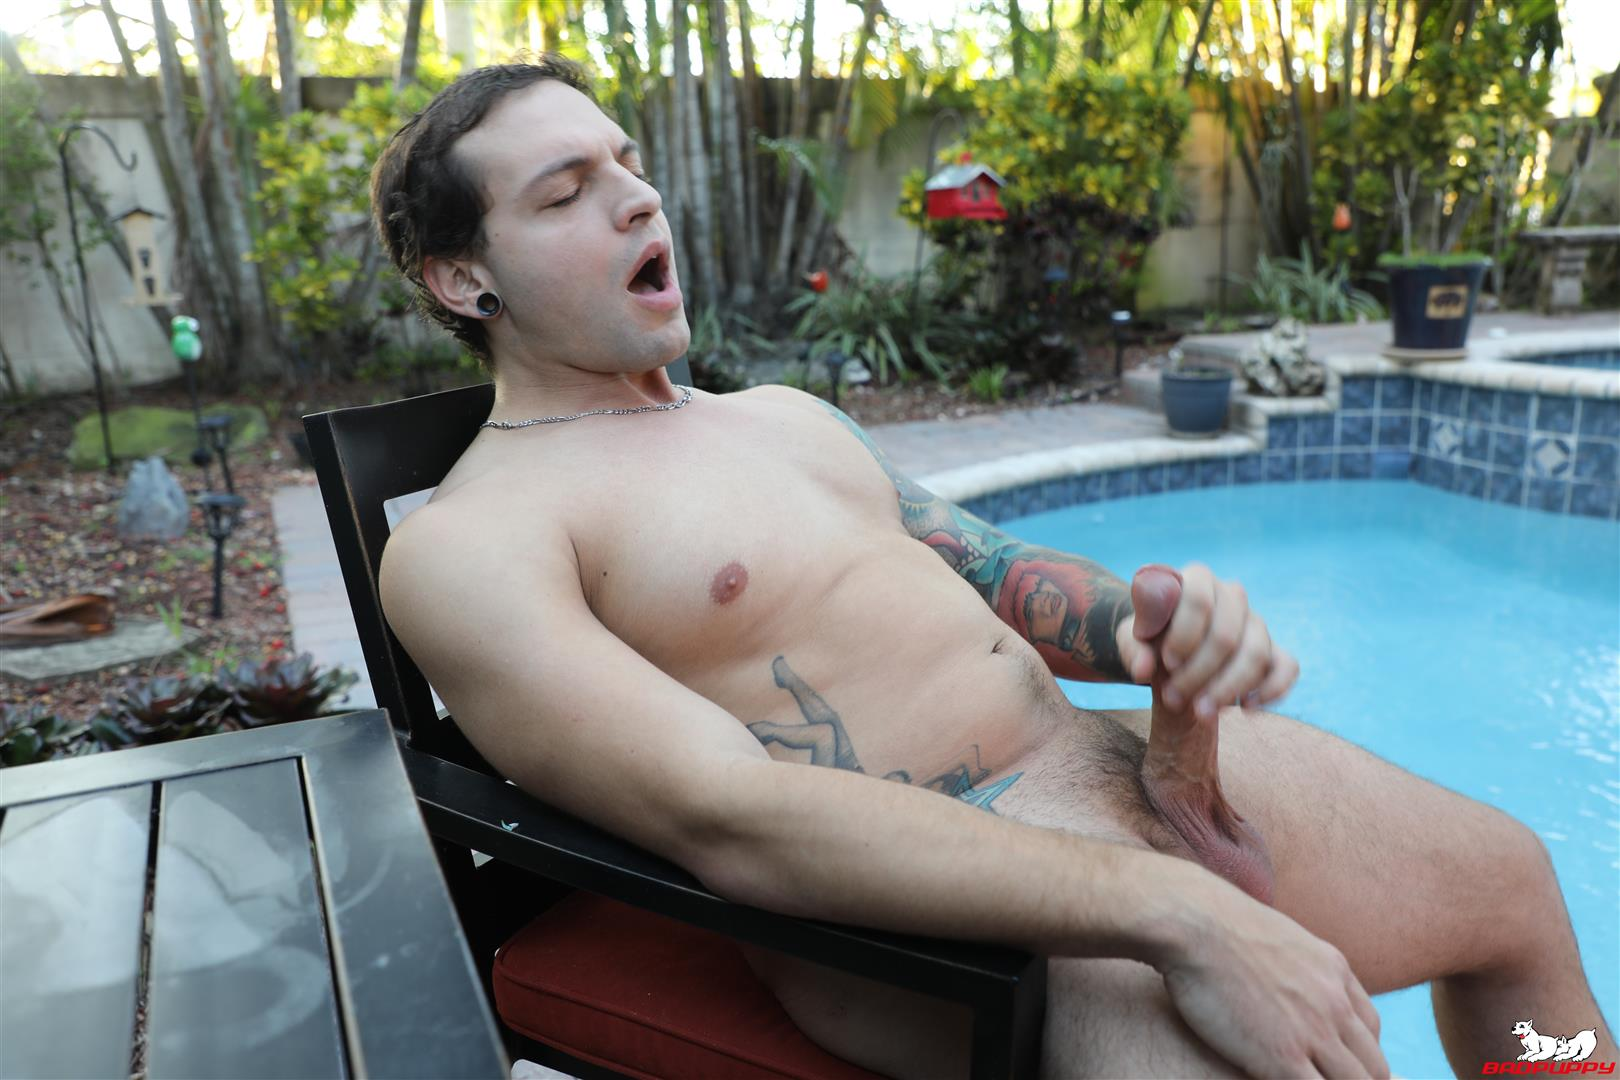 Badpuppy-Eddie-Danger-Thick-Boy-Stroking-His-Fat-Cock-Cum-Video-15 Thick Go-Go Boy Stokes His Hard Fat Cock Until He Cums